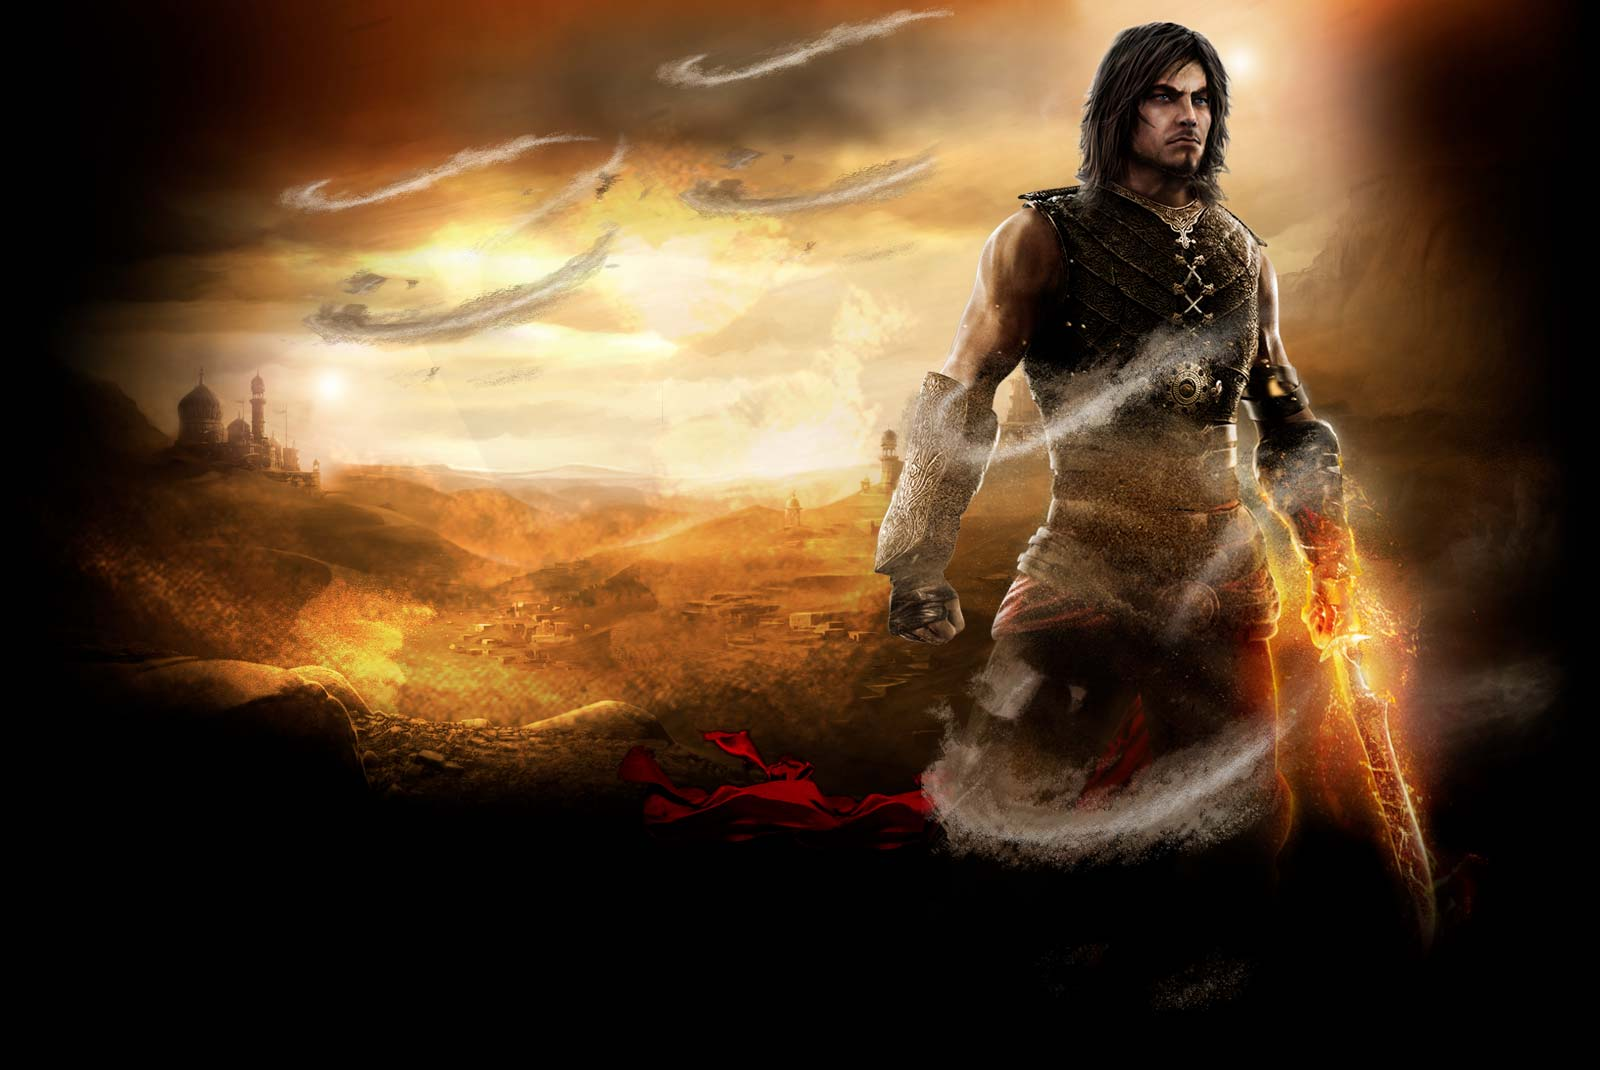 prince of persia hd wallpapers   hd wallpapers